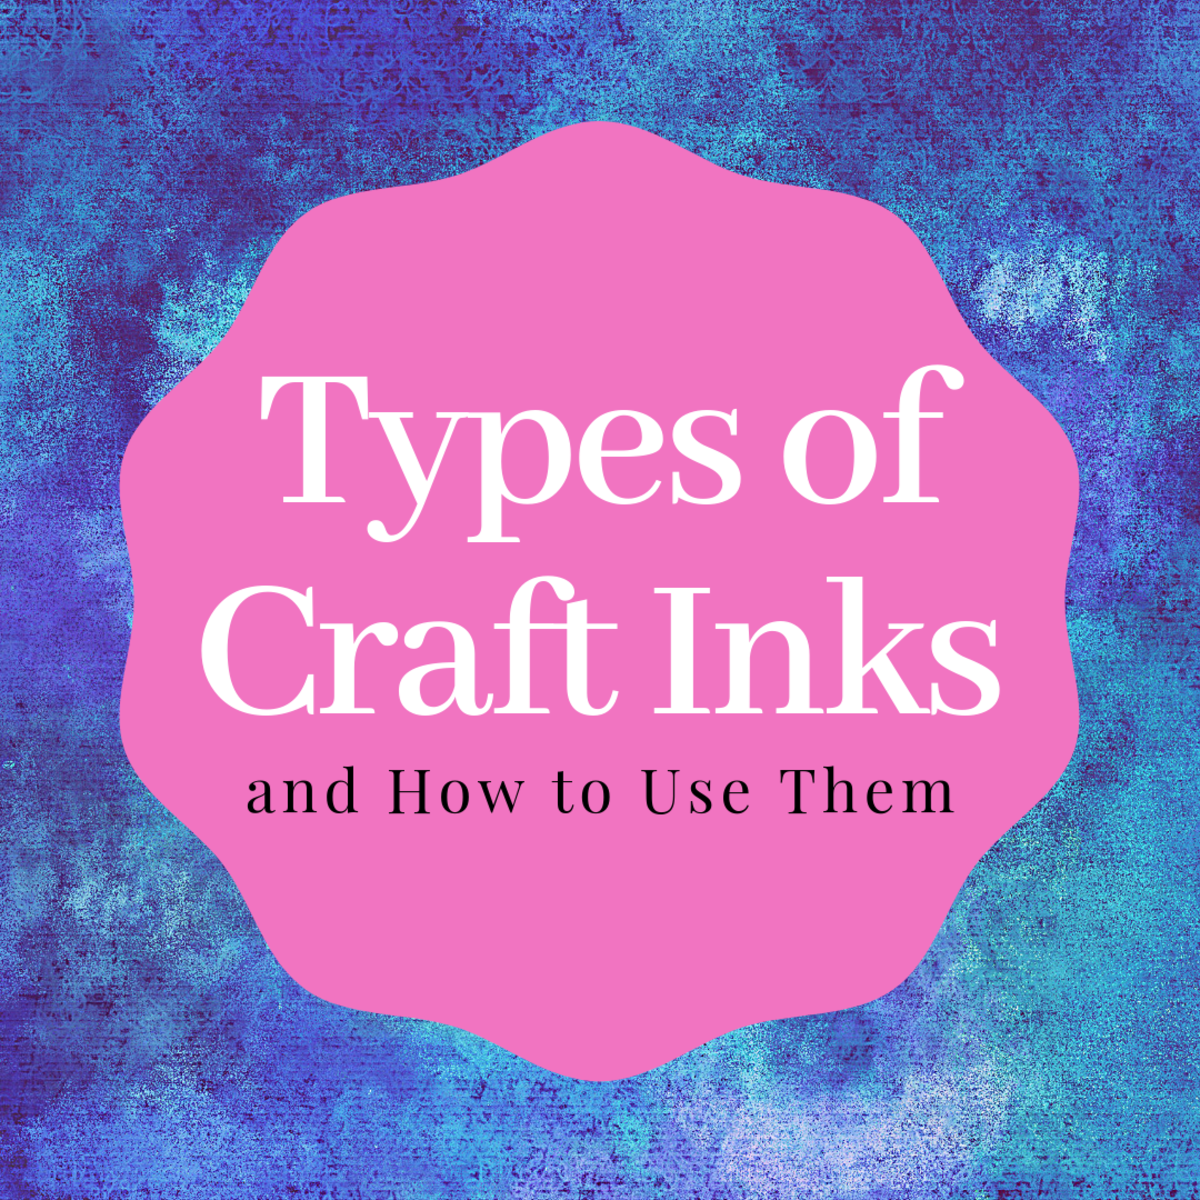 Craft Ink Tips And Techniques